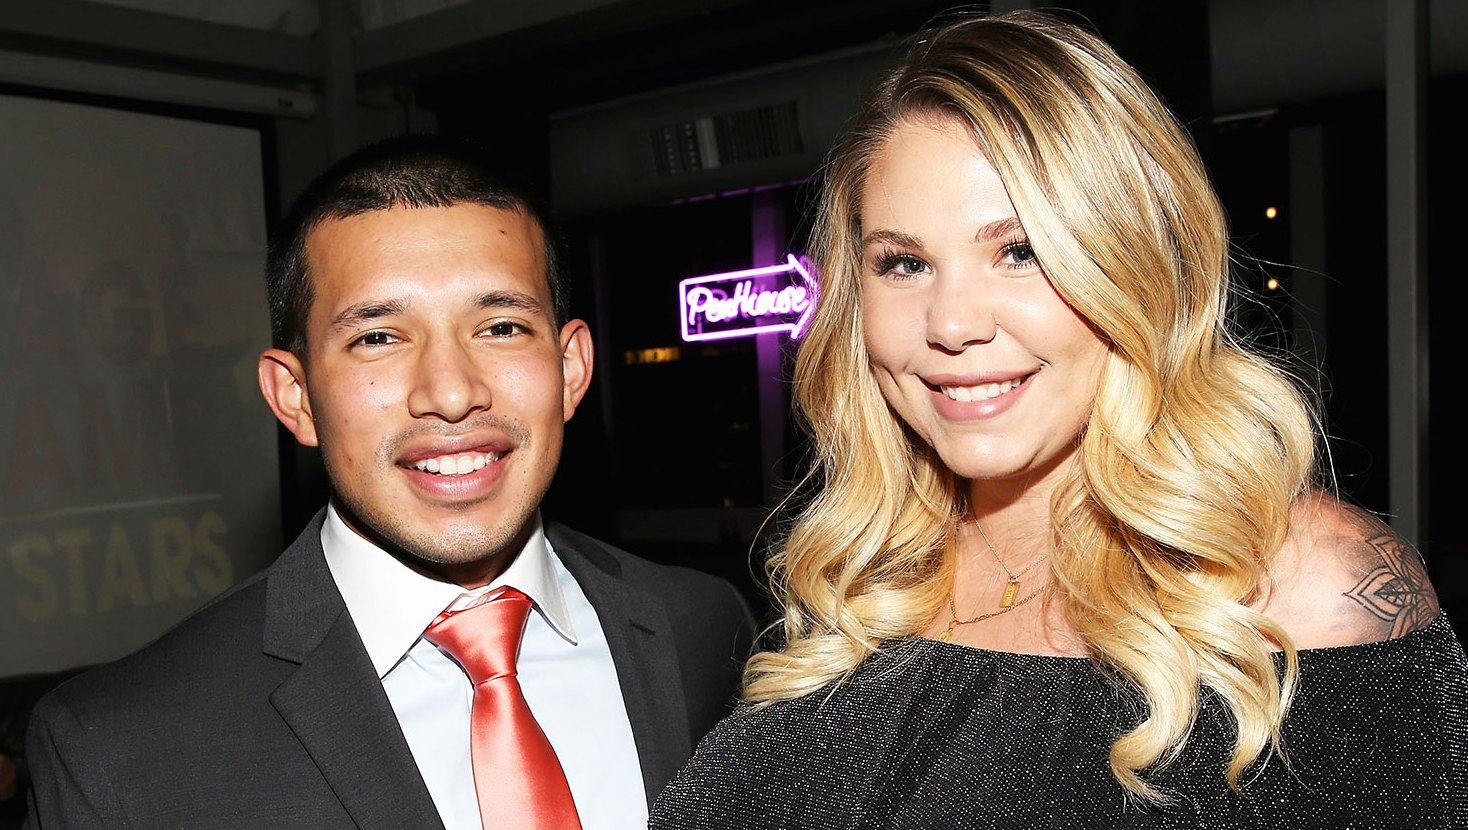 teen mom stars Coparenting Javi Marroquin and Kailyn Lowry